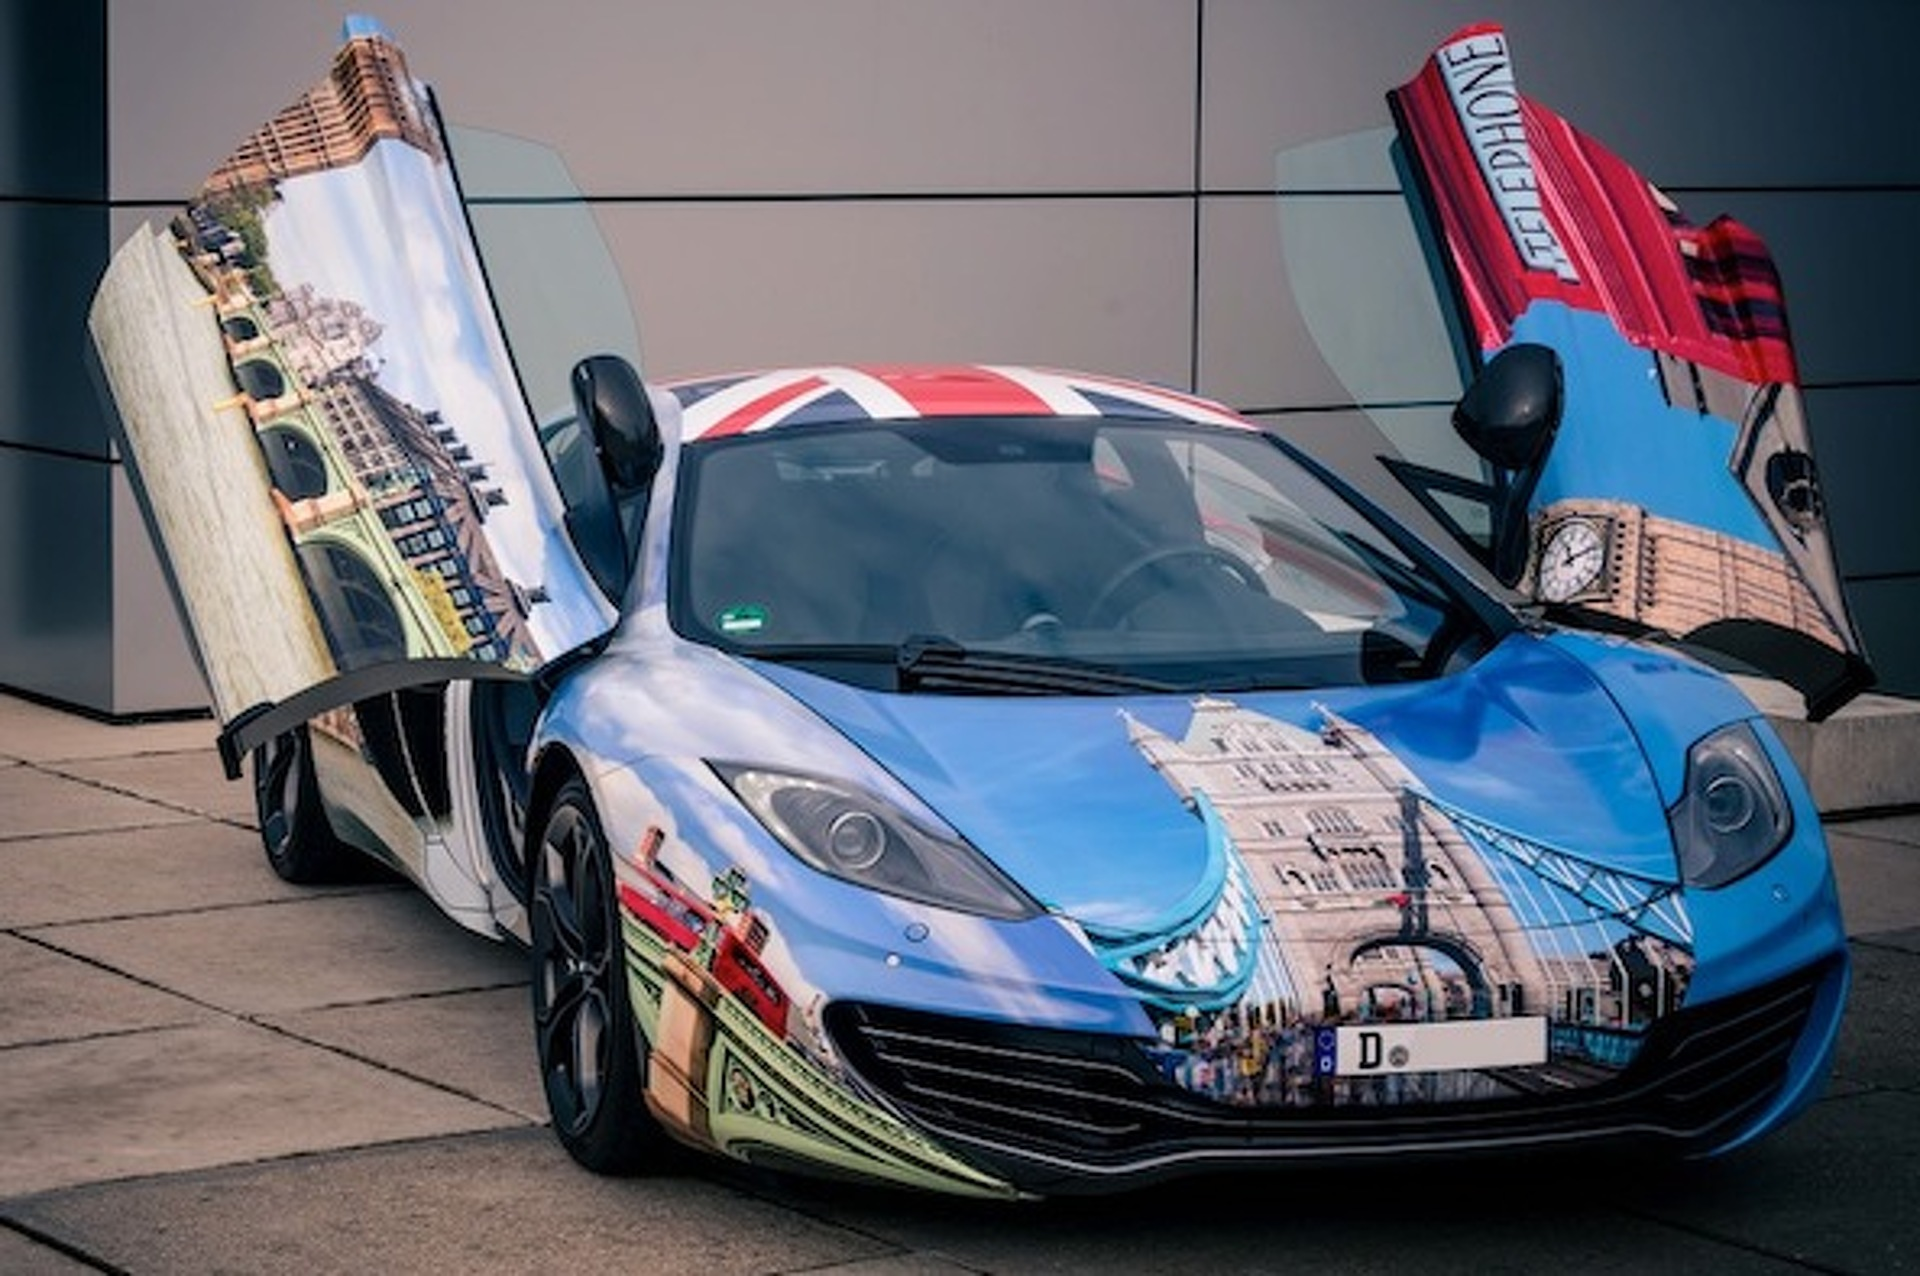 Kate Middleton, Your Gaudy McLaren Chariot Awaits